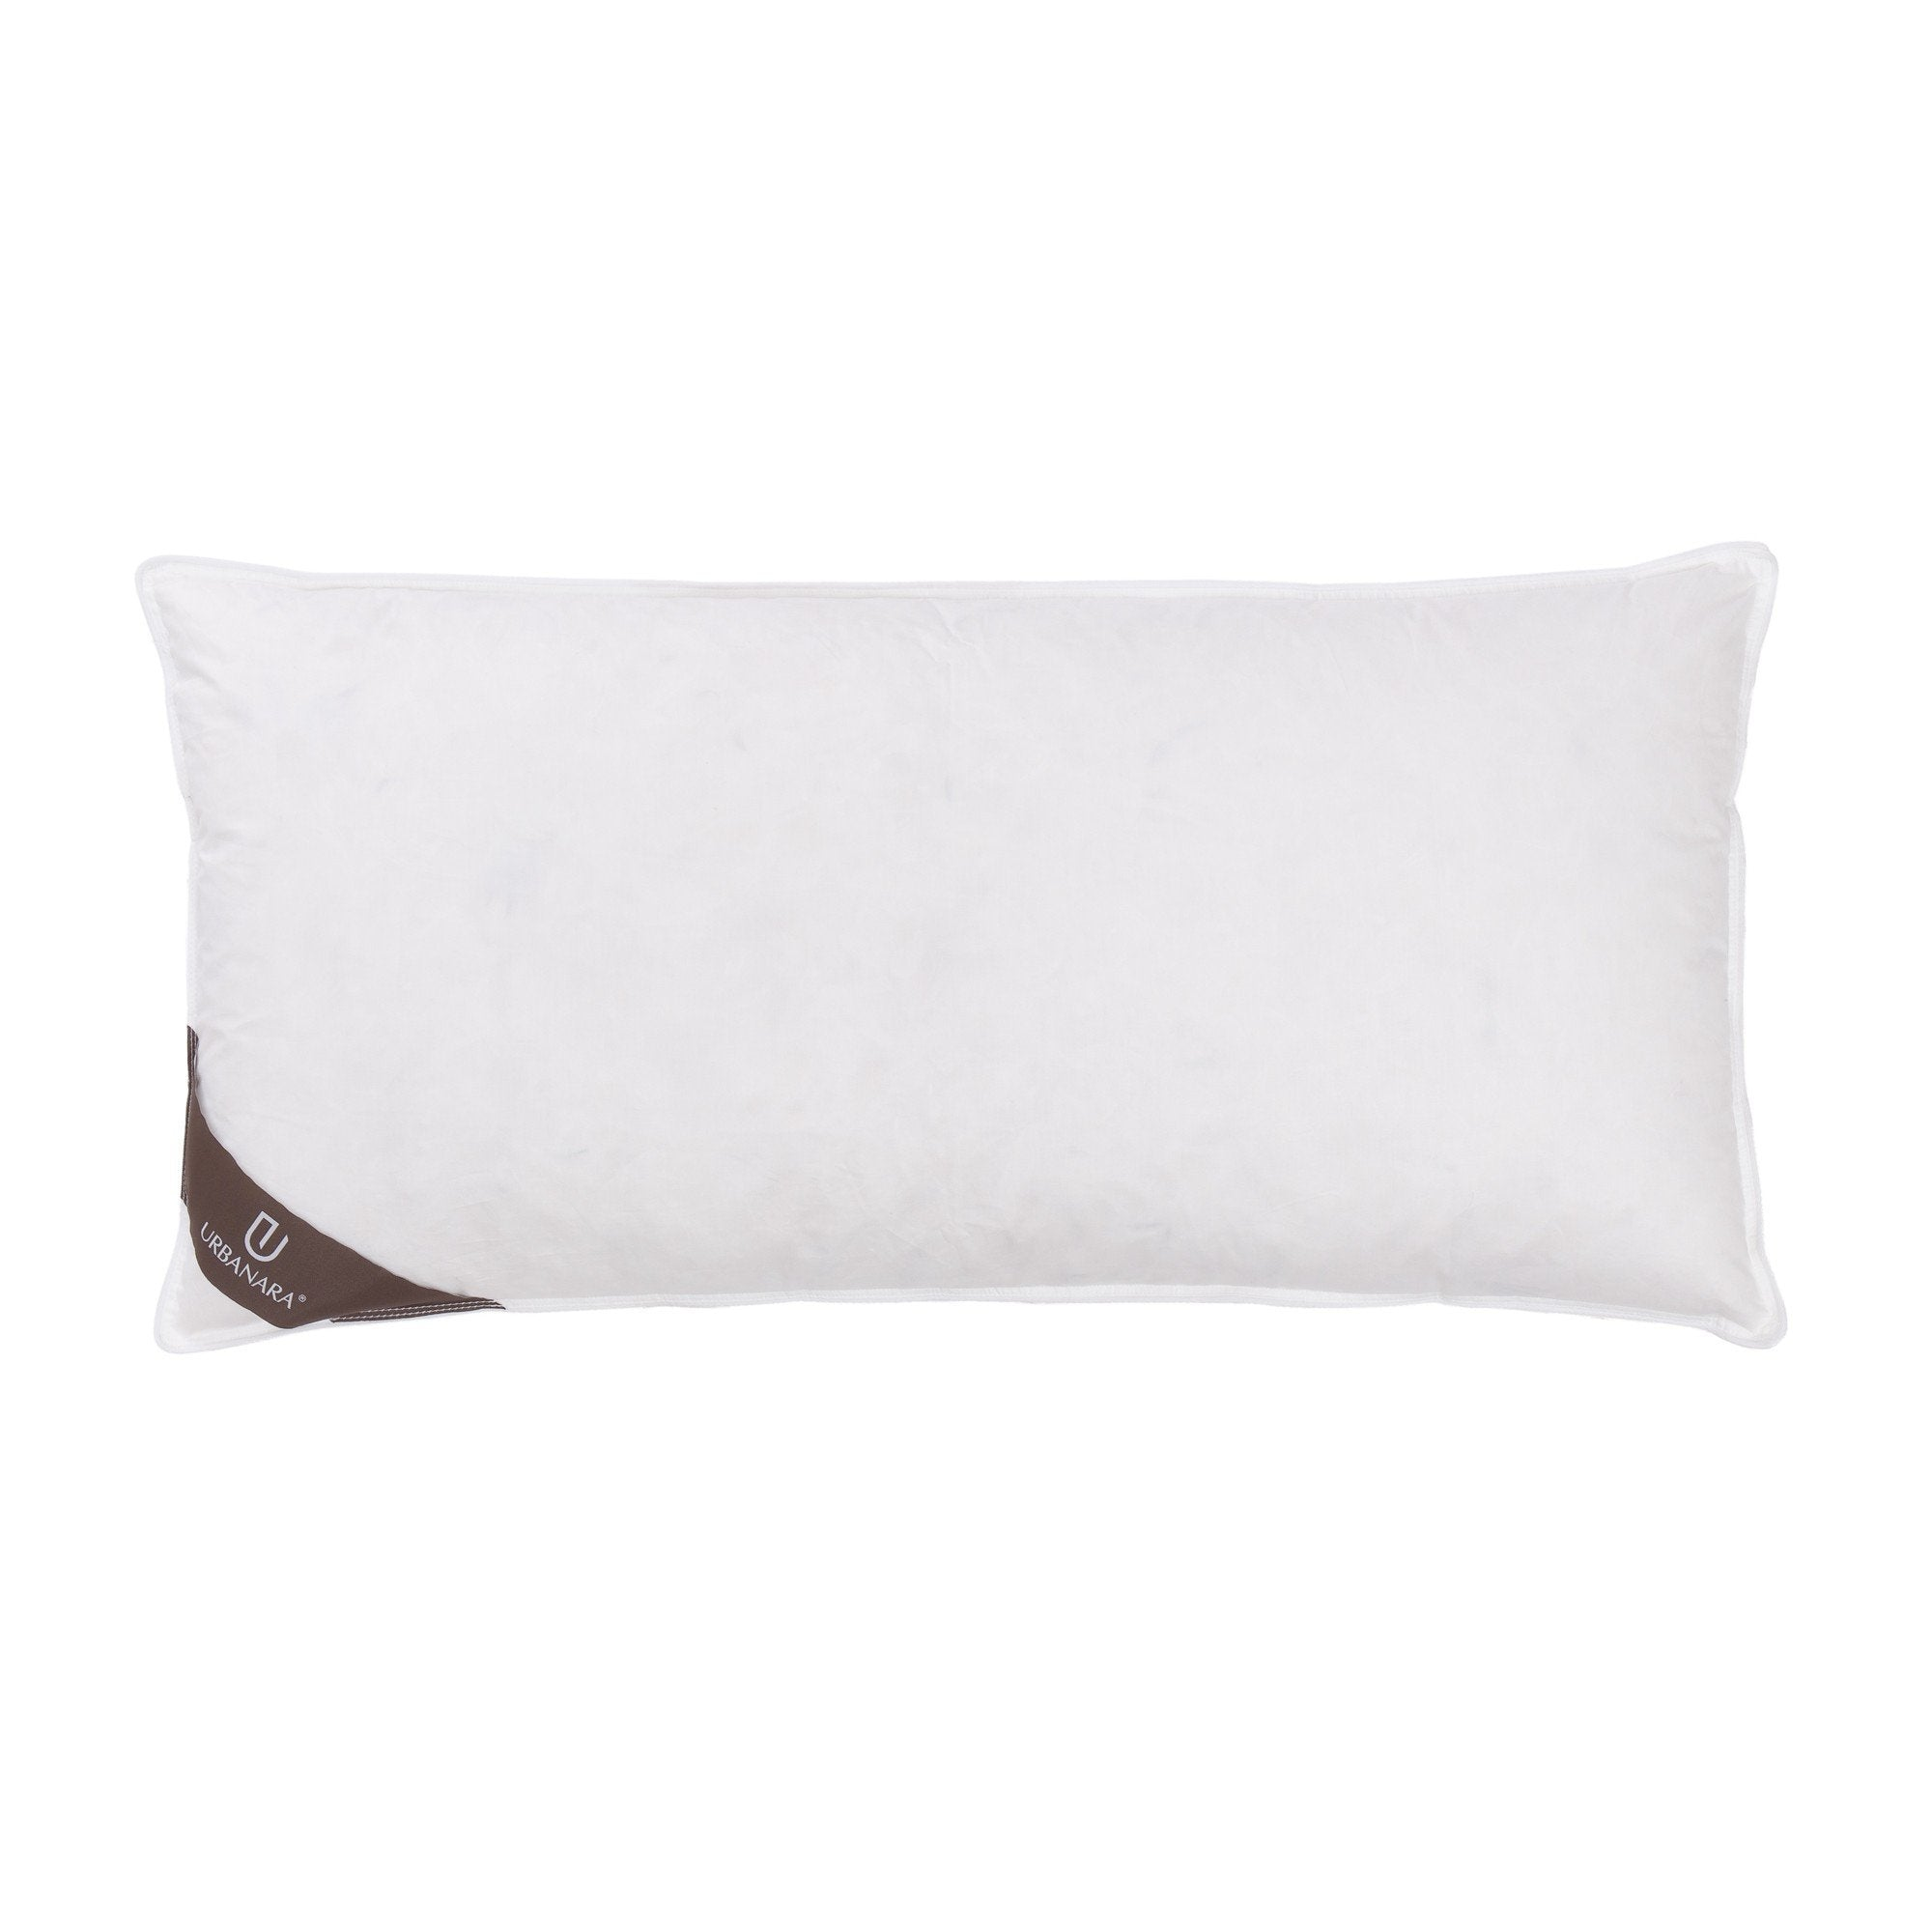 Trige pillow, white, 80% goose feathers & 20% goose down & 100% cotton | URBANARA pillows